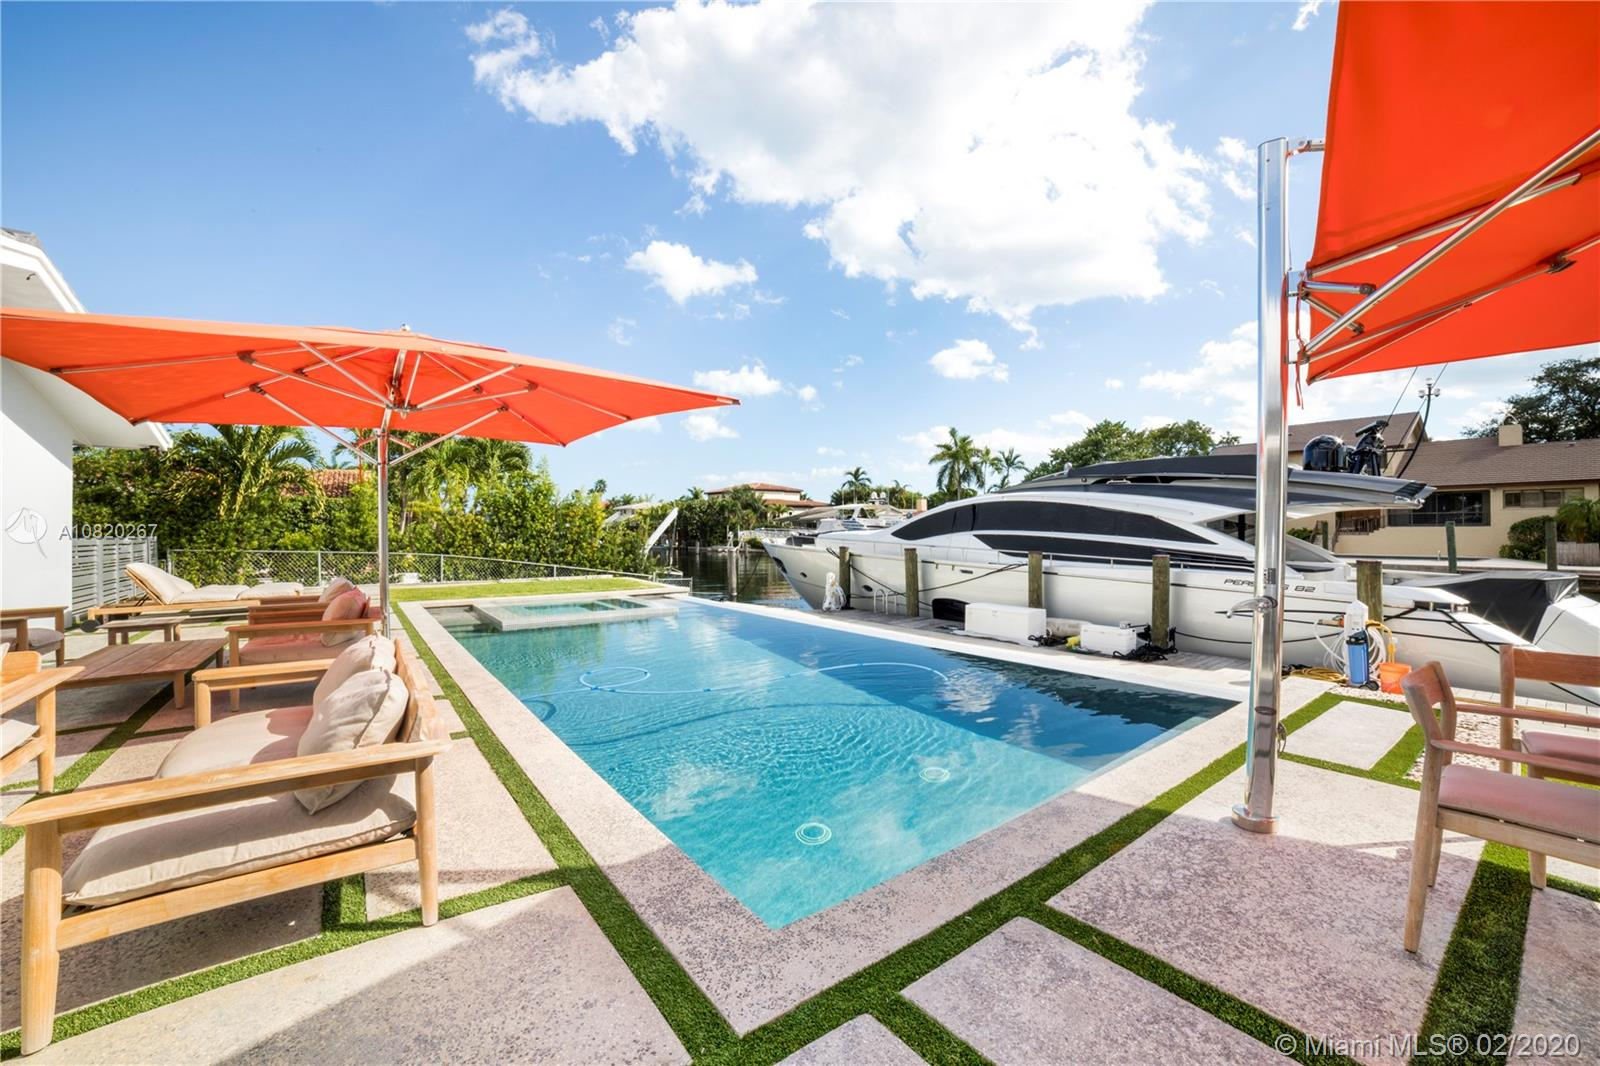 Fully updated & renovated home in Gables by the Sea, known as a boater's hideaway. On a highly desirable deep wide canal 110' ft of water frontage, new seawall and newly installed boat lift up to 30k pounds. NO BRIDGES TO BAY! Reach Biscayne Bay under 5 mins. 3442 sq ft liv area, 6 bedrooms,3 full bathrooms. 11,500 sq ft lot. New Roof(2019) saltwater heated pool & jacuzzi.2 car garage+large driveway fits 6-8 cars, lush & well manicured landscape, hurricane impact windows & doors, electronic blinds, Smart Home, marble floors in common areas & woodfloors in bedrooms, Chef's kitchen w/gas stove top, wine cooler,& icemaker. Secure community w/guard-gated entrance, pedestrian+pet friendly streets w/neighborhood park within, great public & private schools. Tenant occupied until June 2021